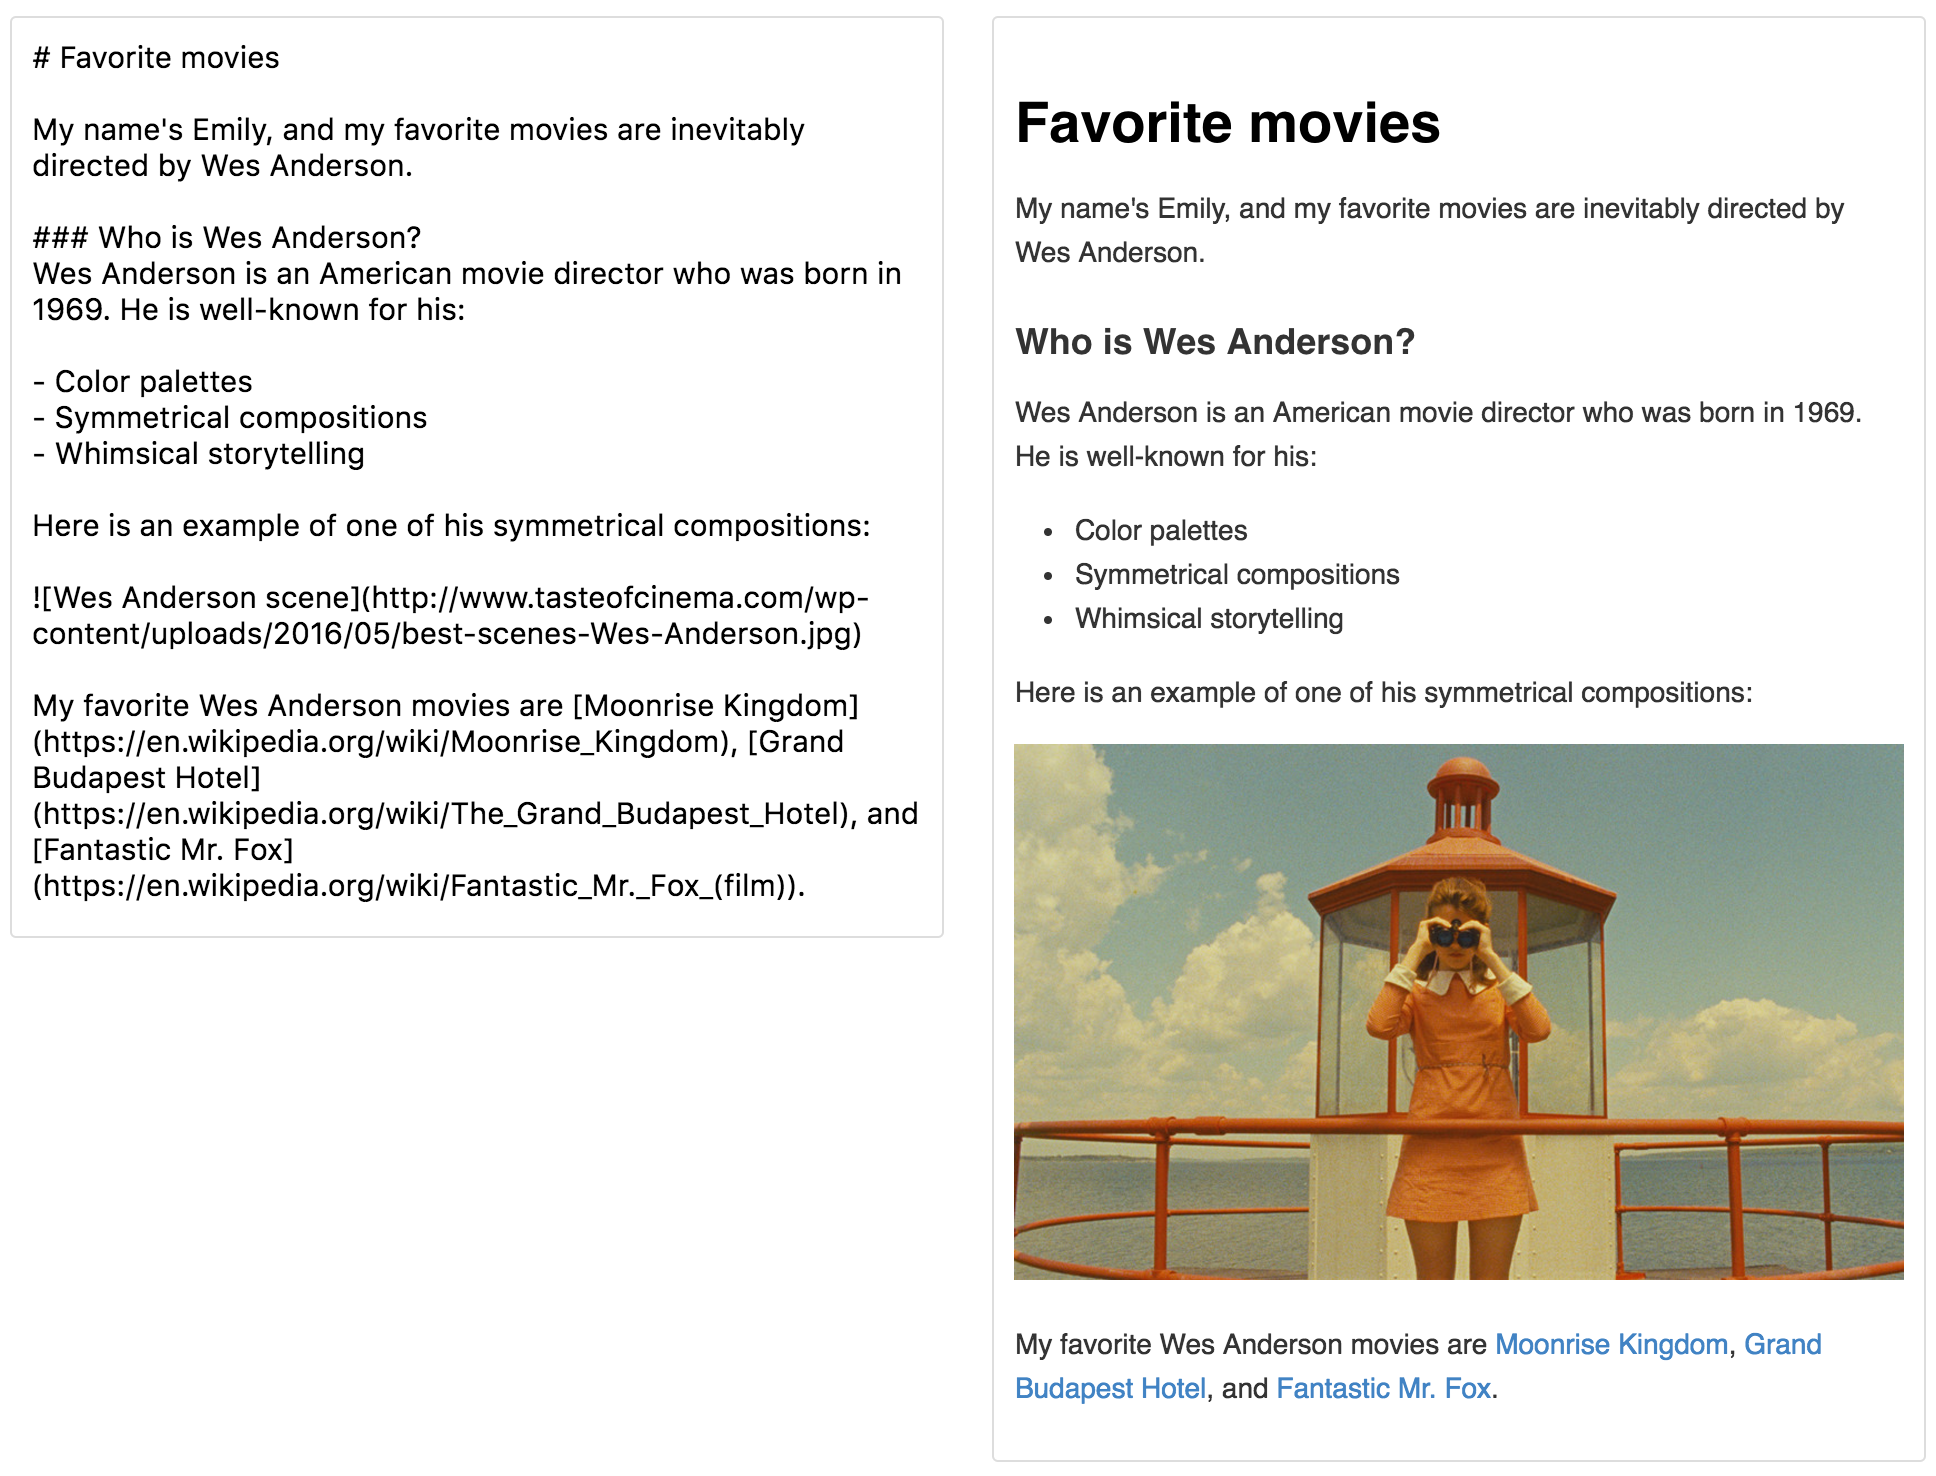 Learn the Markdown language - Contribute to open source on